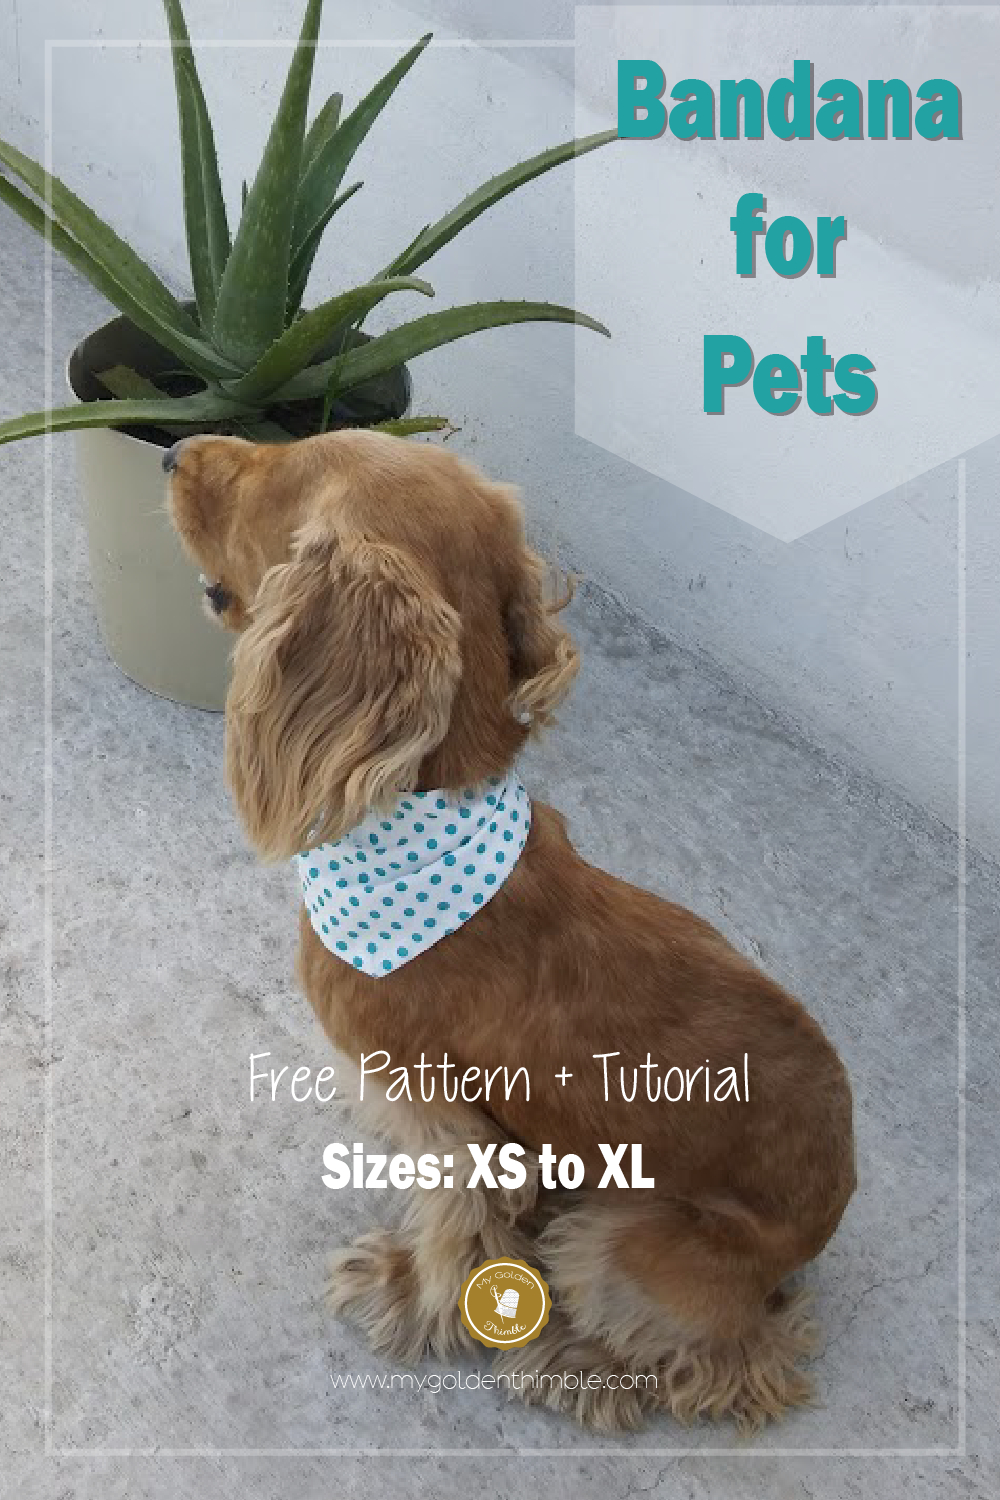 Free Dog Bandana Pattern Diy: For All Sizes!   Crafty   Sewing - Free Printable Sewing Patterns For Dog Clothes